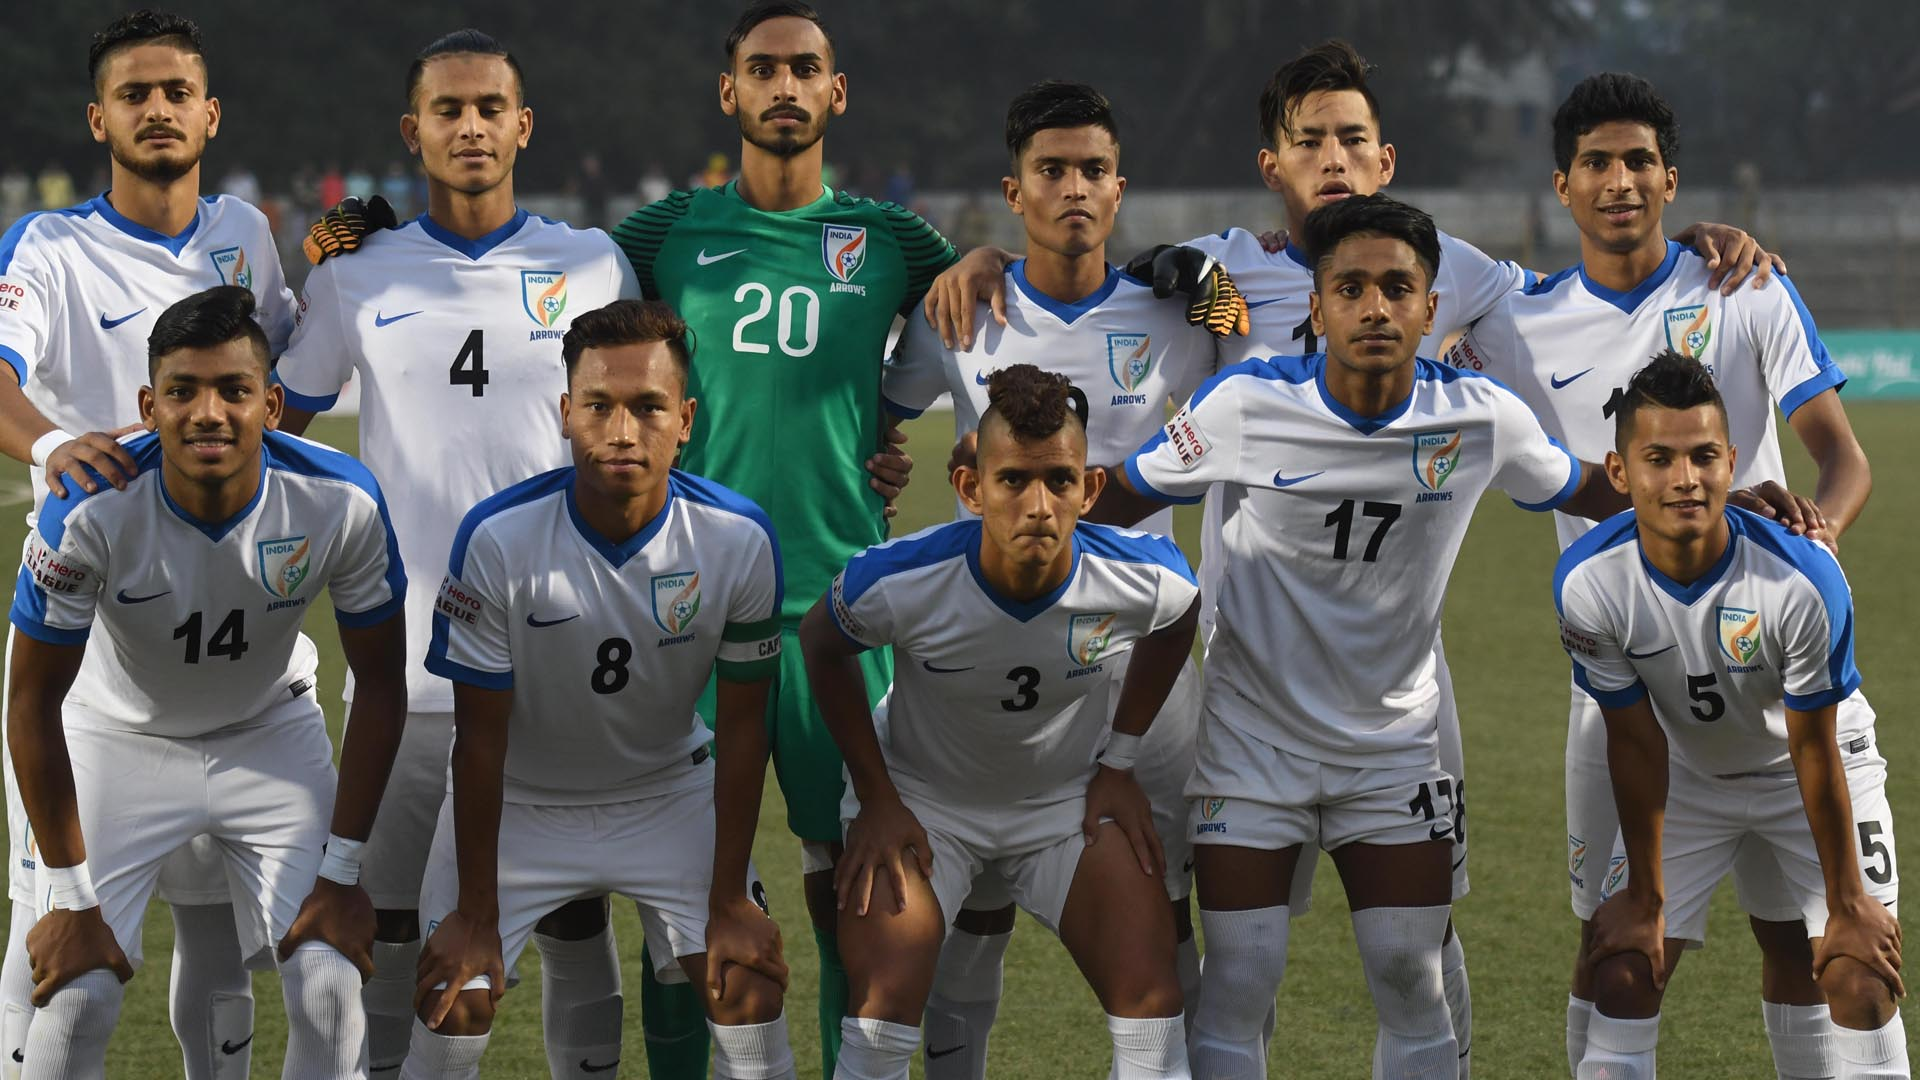 Indian Arrows I-League 2017/2018